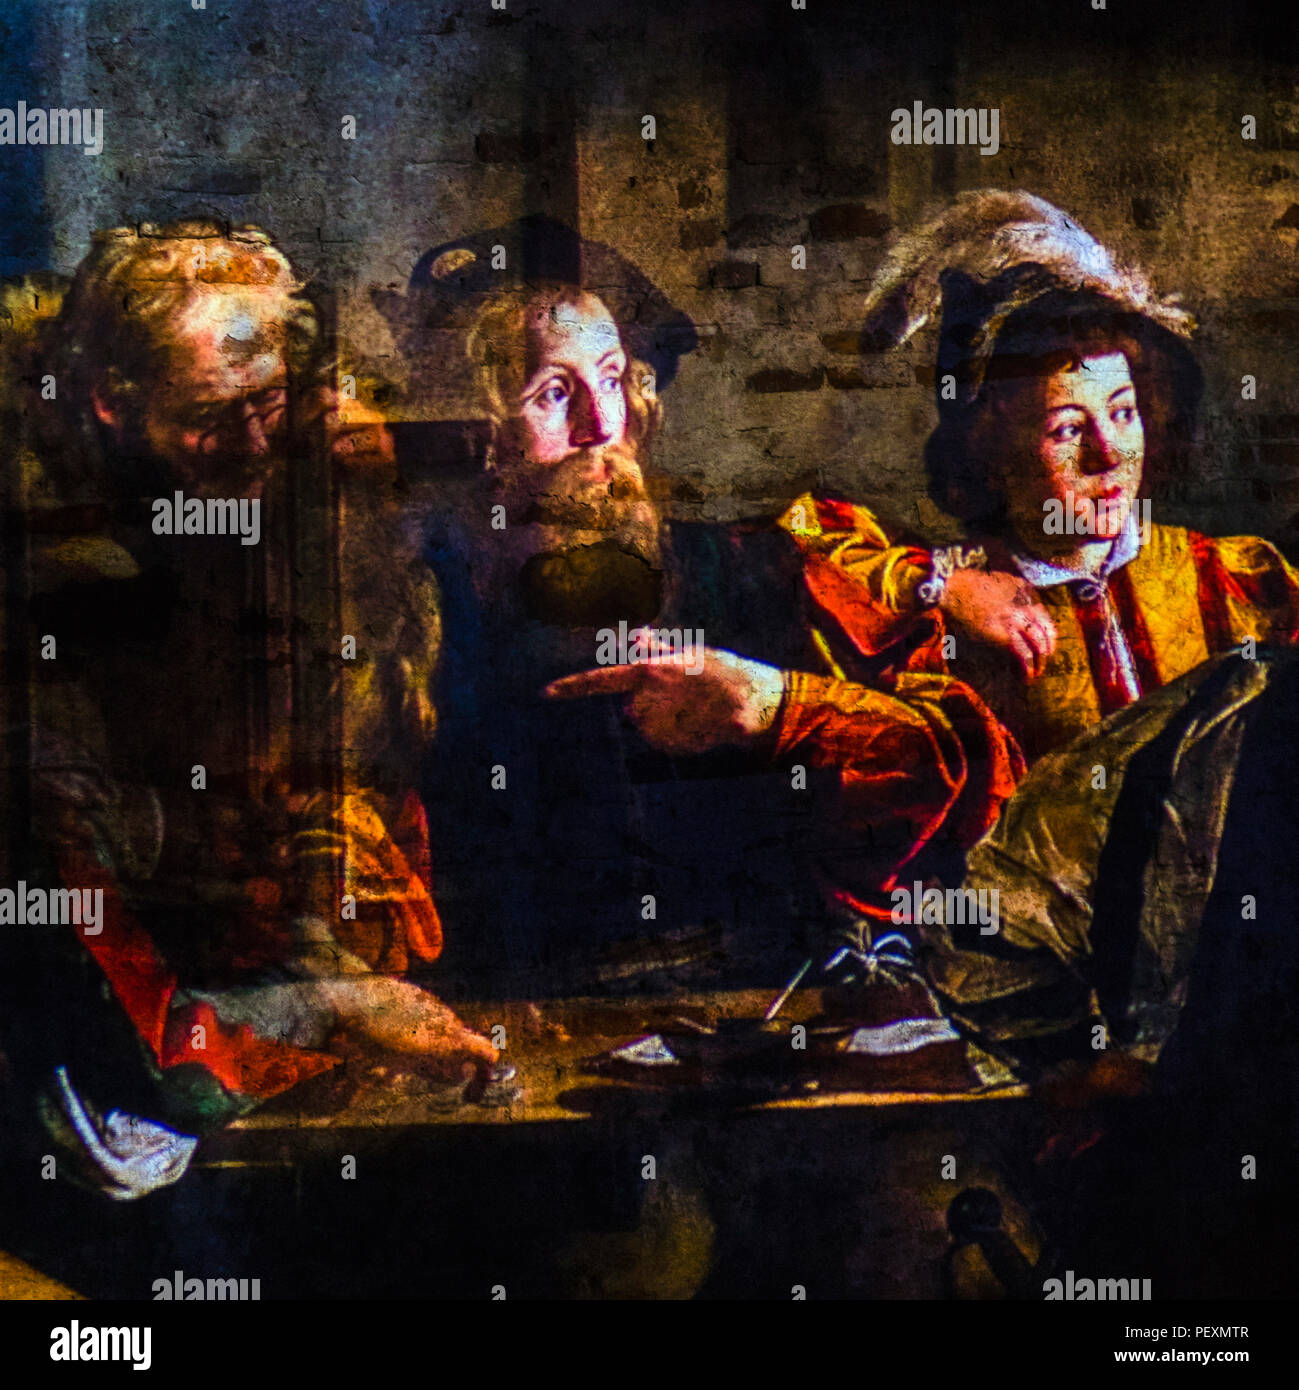 The Calling of Saint Matthew by Caravaggio projected on wall, Lucca, Tuscany, Italy - Stock Image